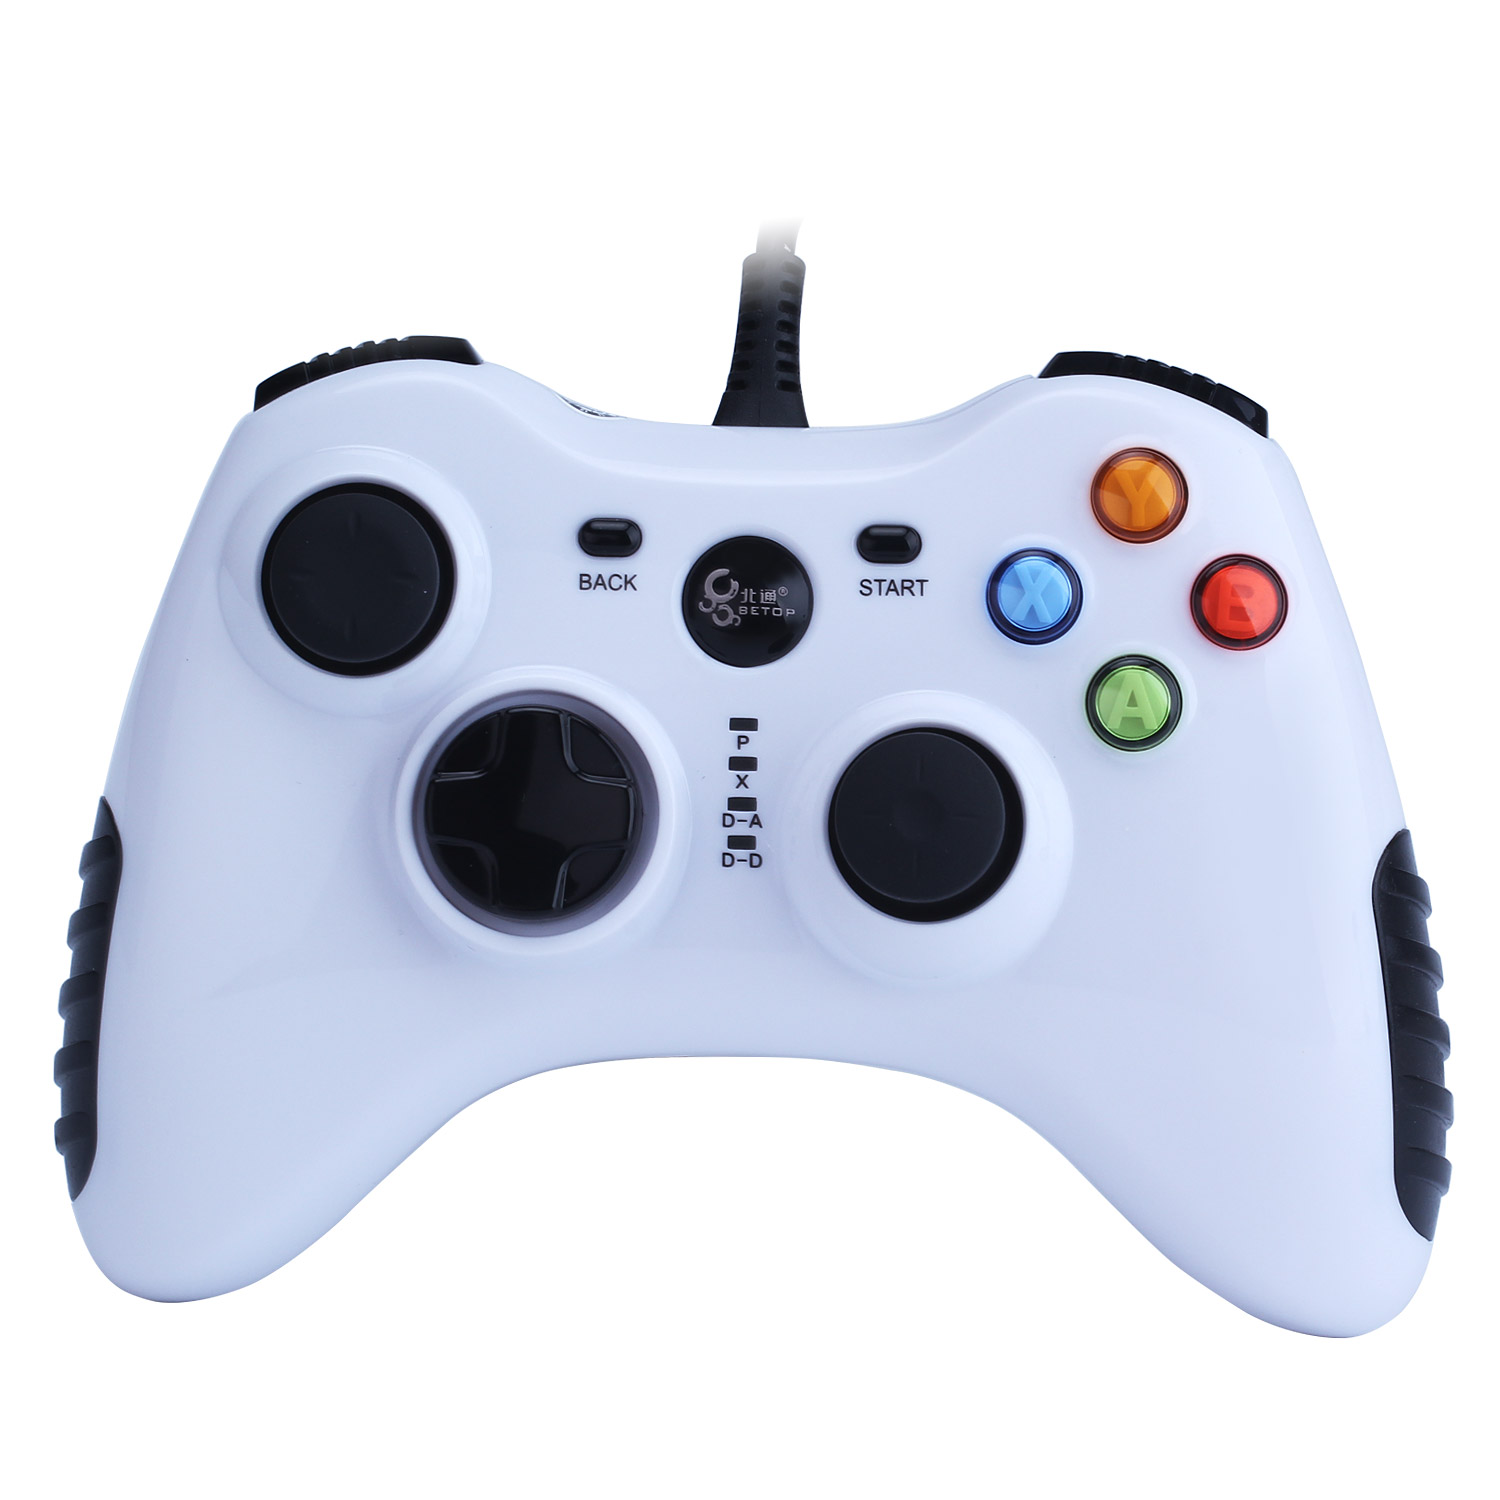 niceEshop Wired Game Controller for PC(Windows XP/7/8/10) & Android Devices (White)